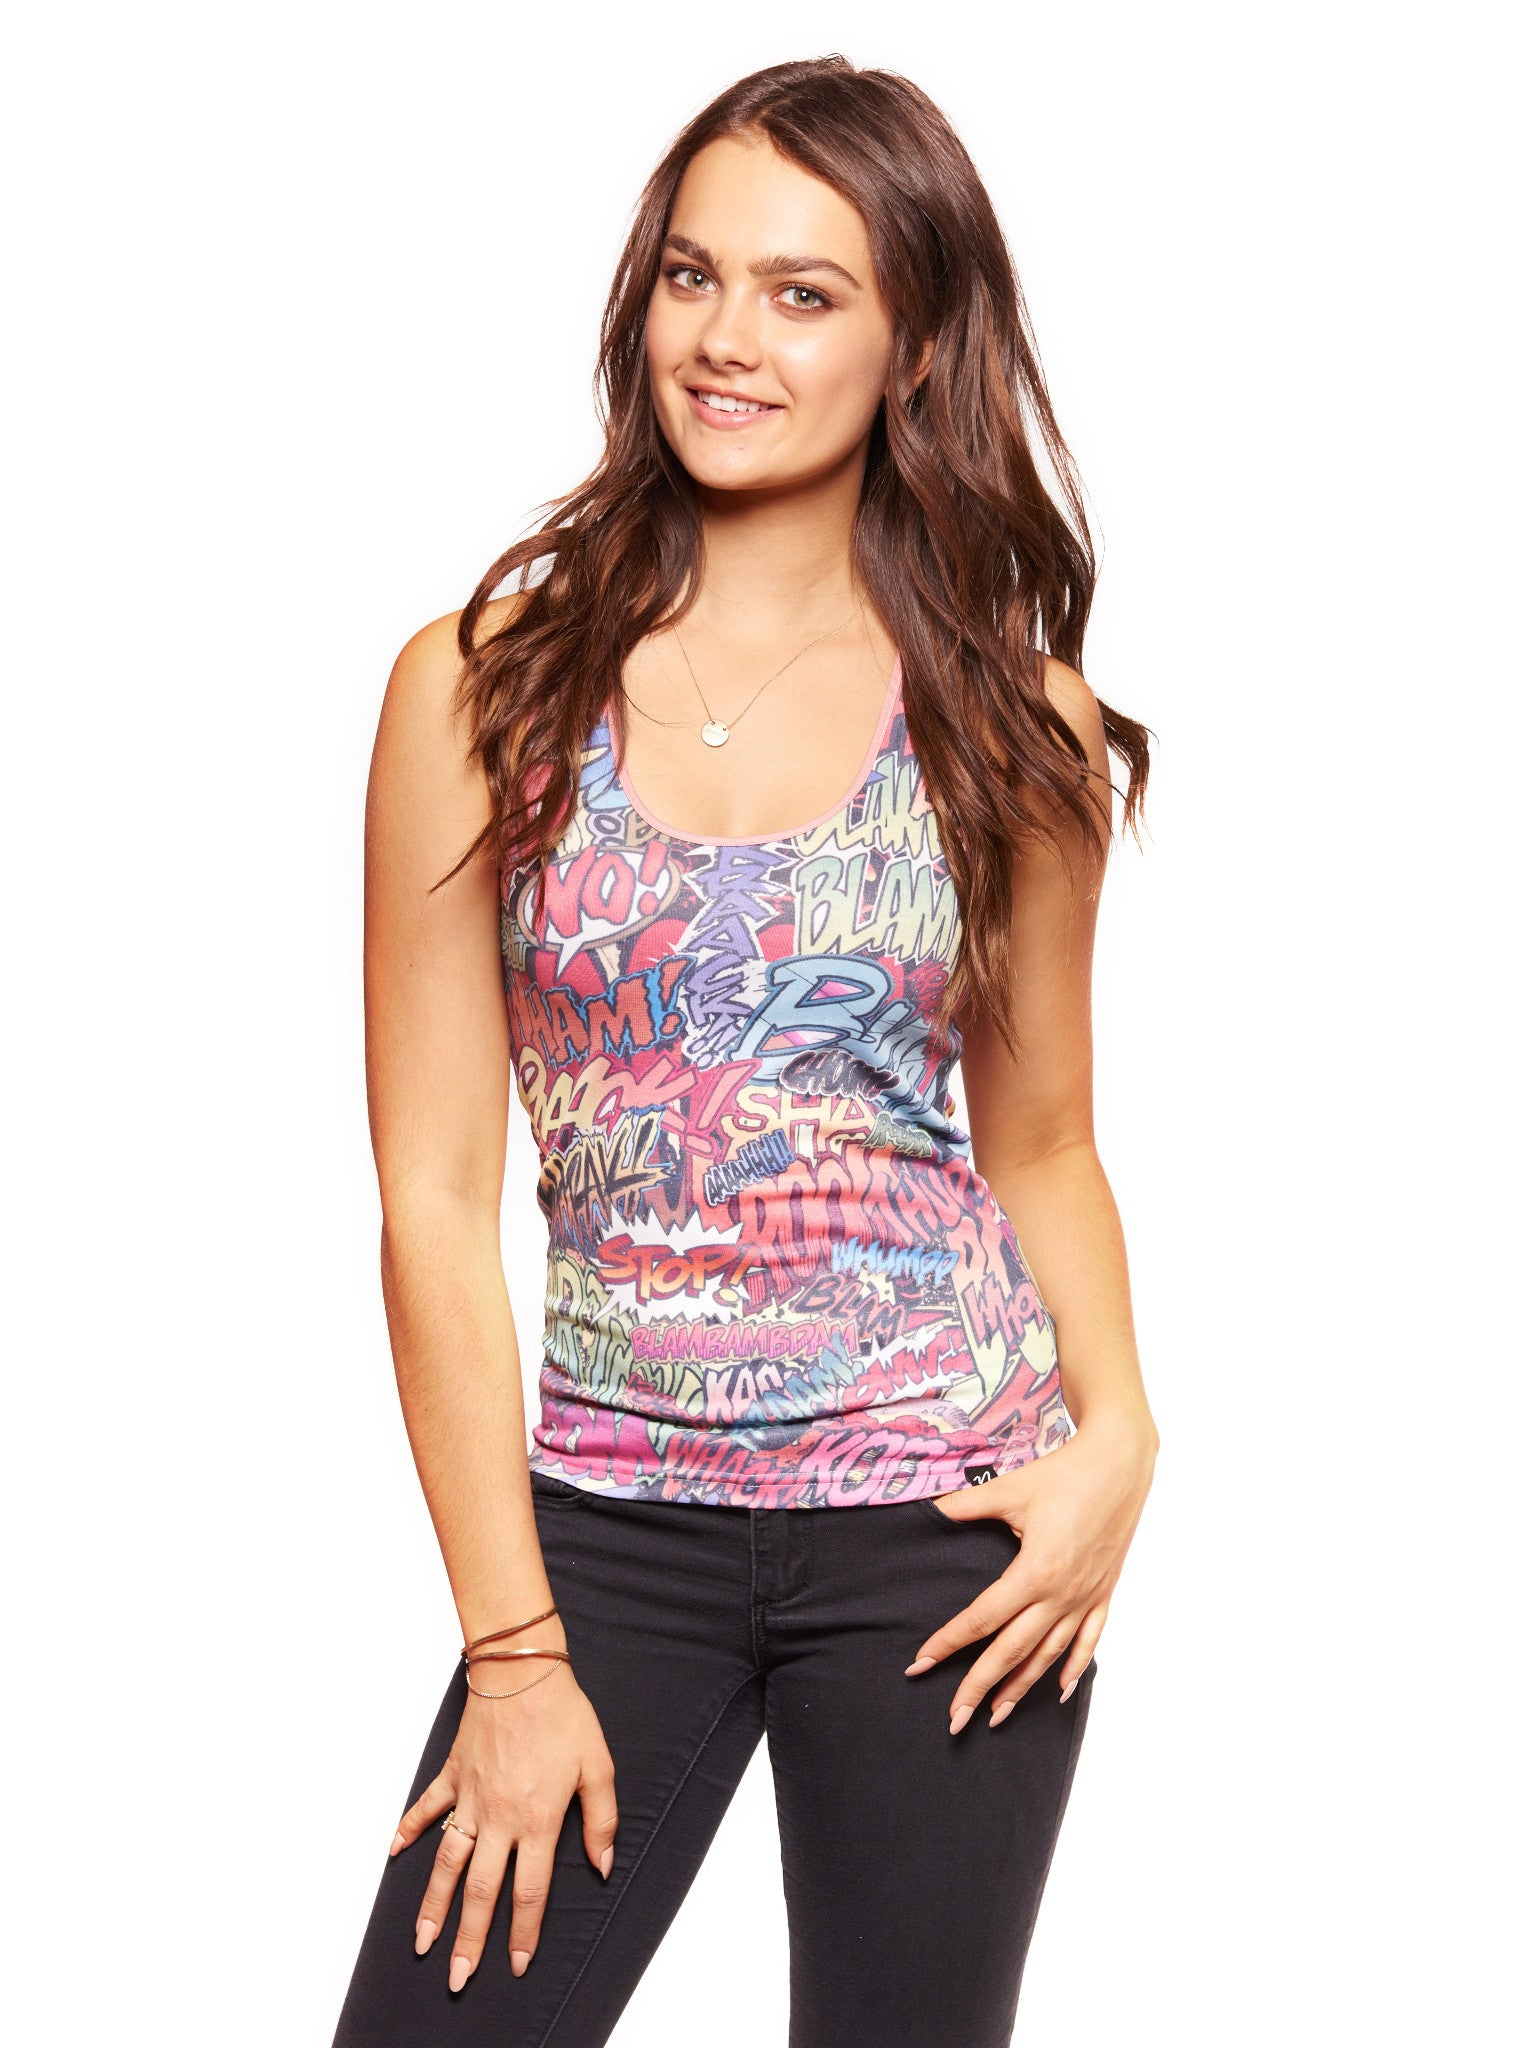 Action Packed Women's Trinity Tank - Nuvango  - 1